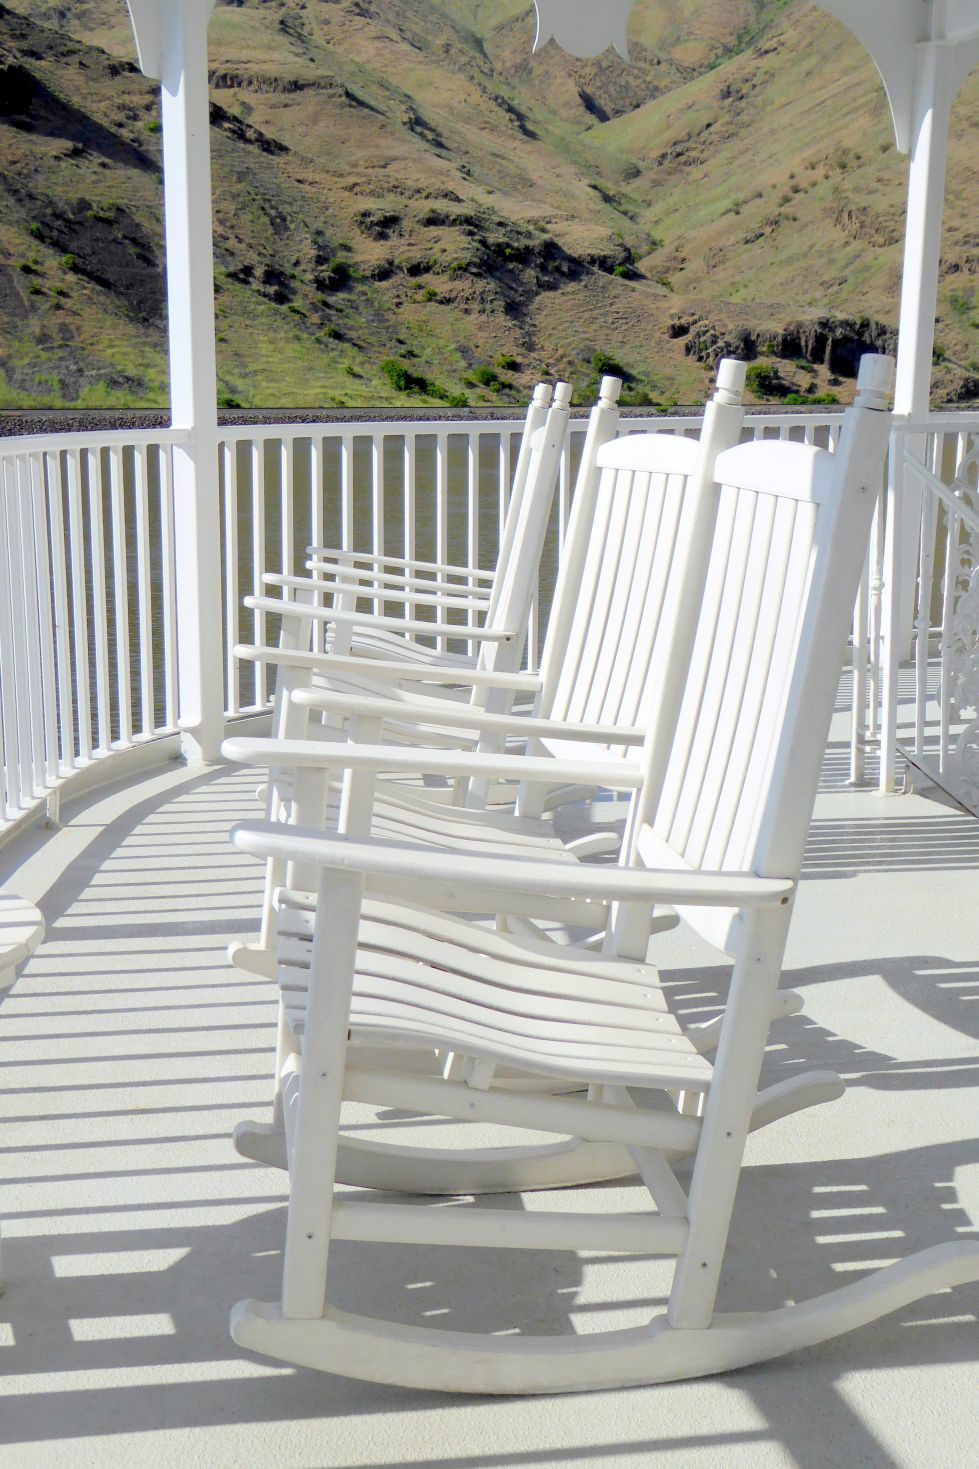 There were plenty of rocking chairs on deck.